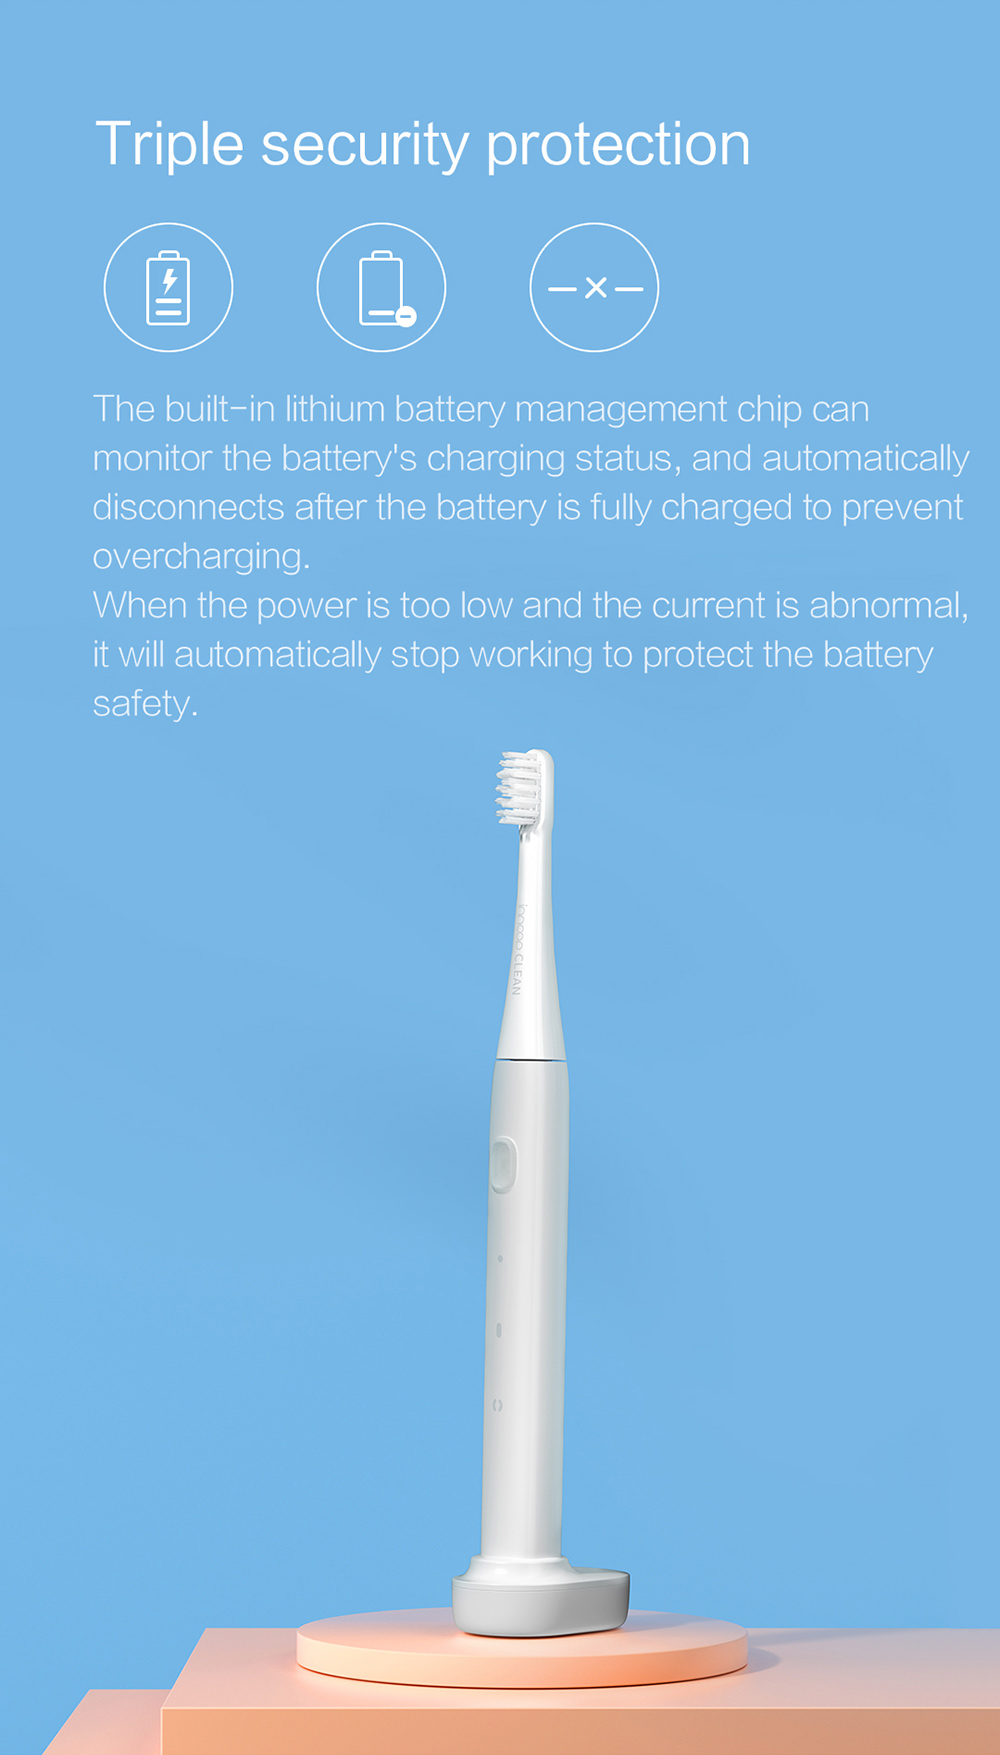 PT01 Electric Toothbrush Triple security protection